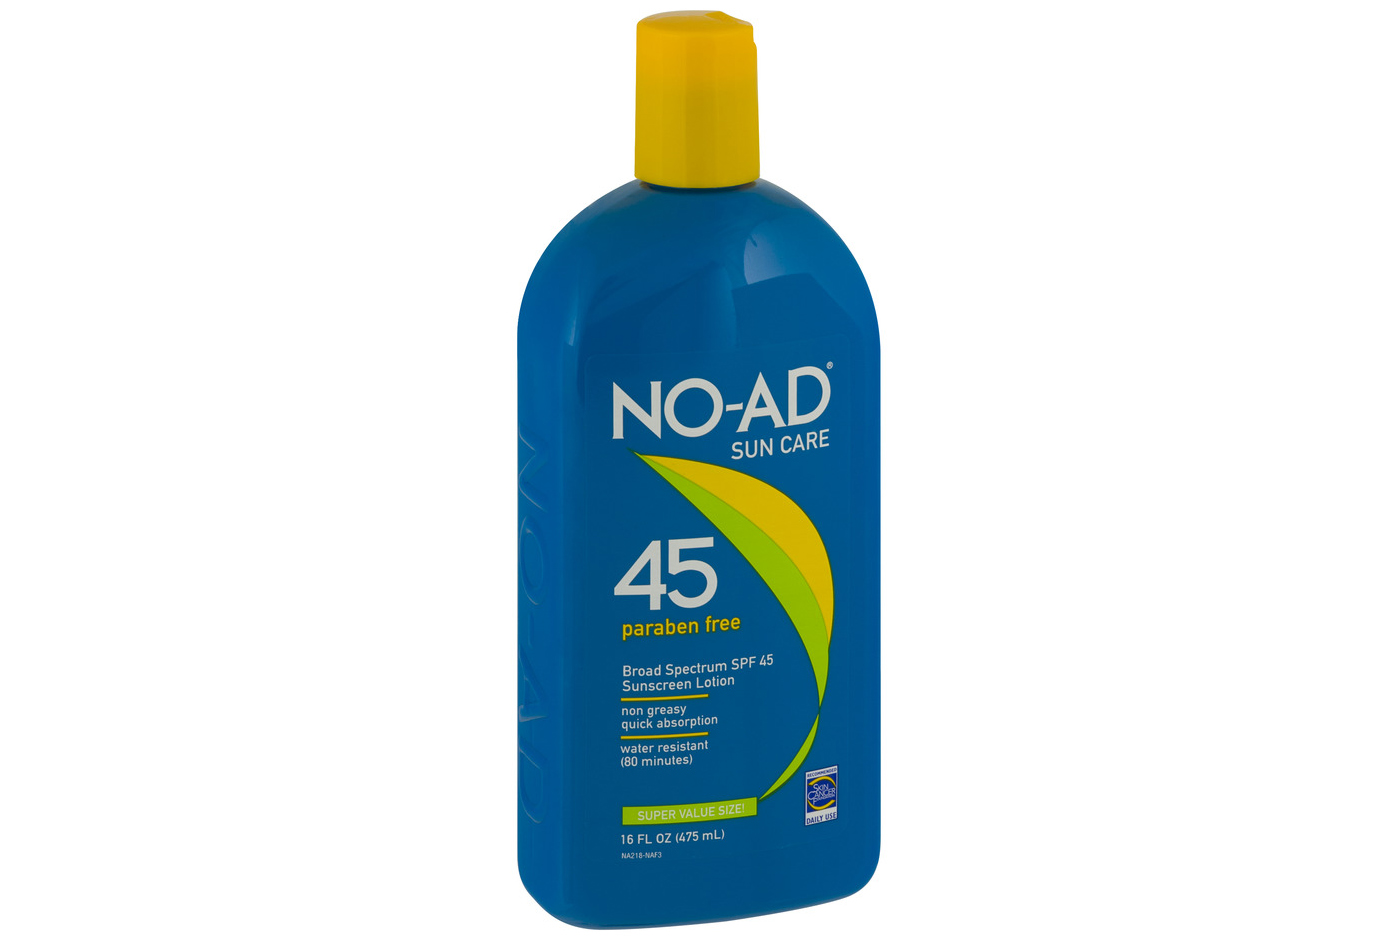 NO-AD SPF 45 Sunscreen